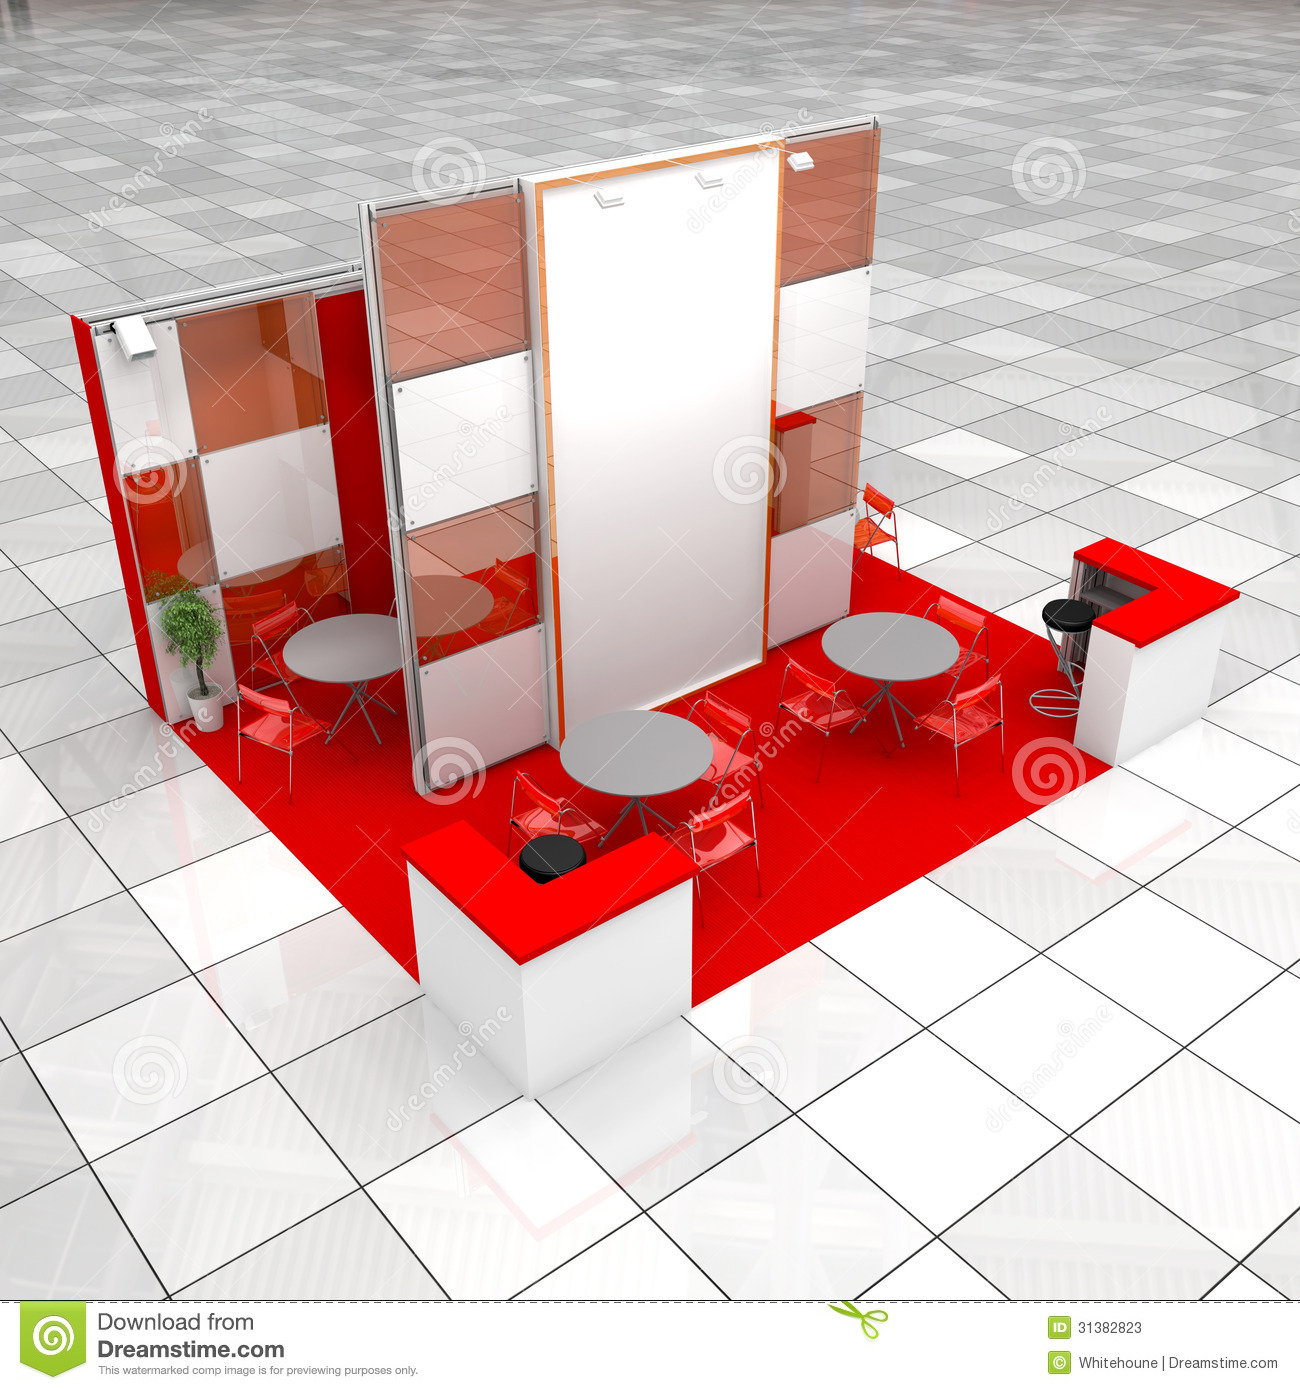 Modern Exhibition Stand : Images about exhibition stands on pinterest